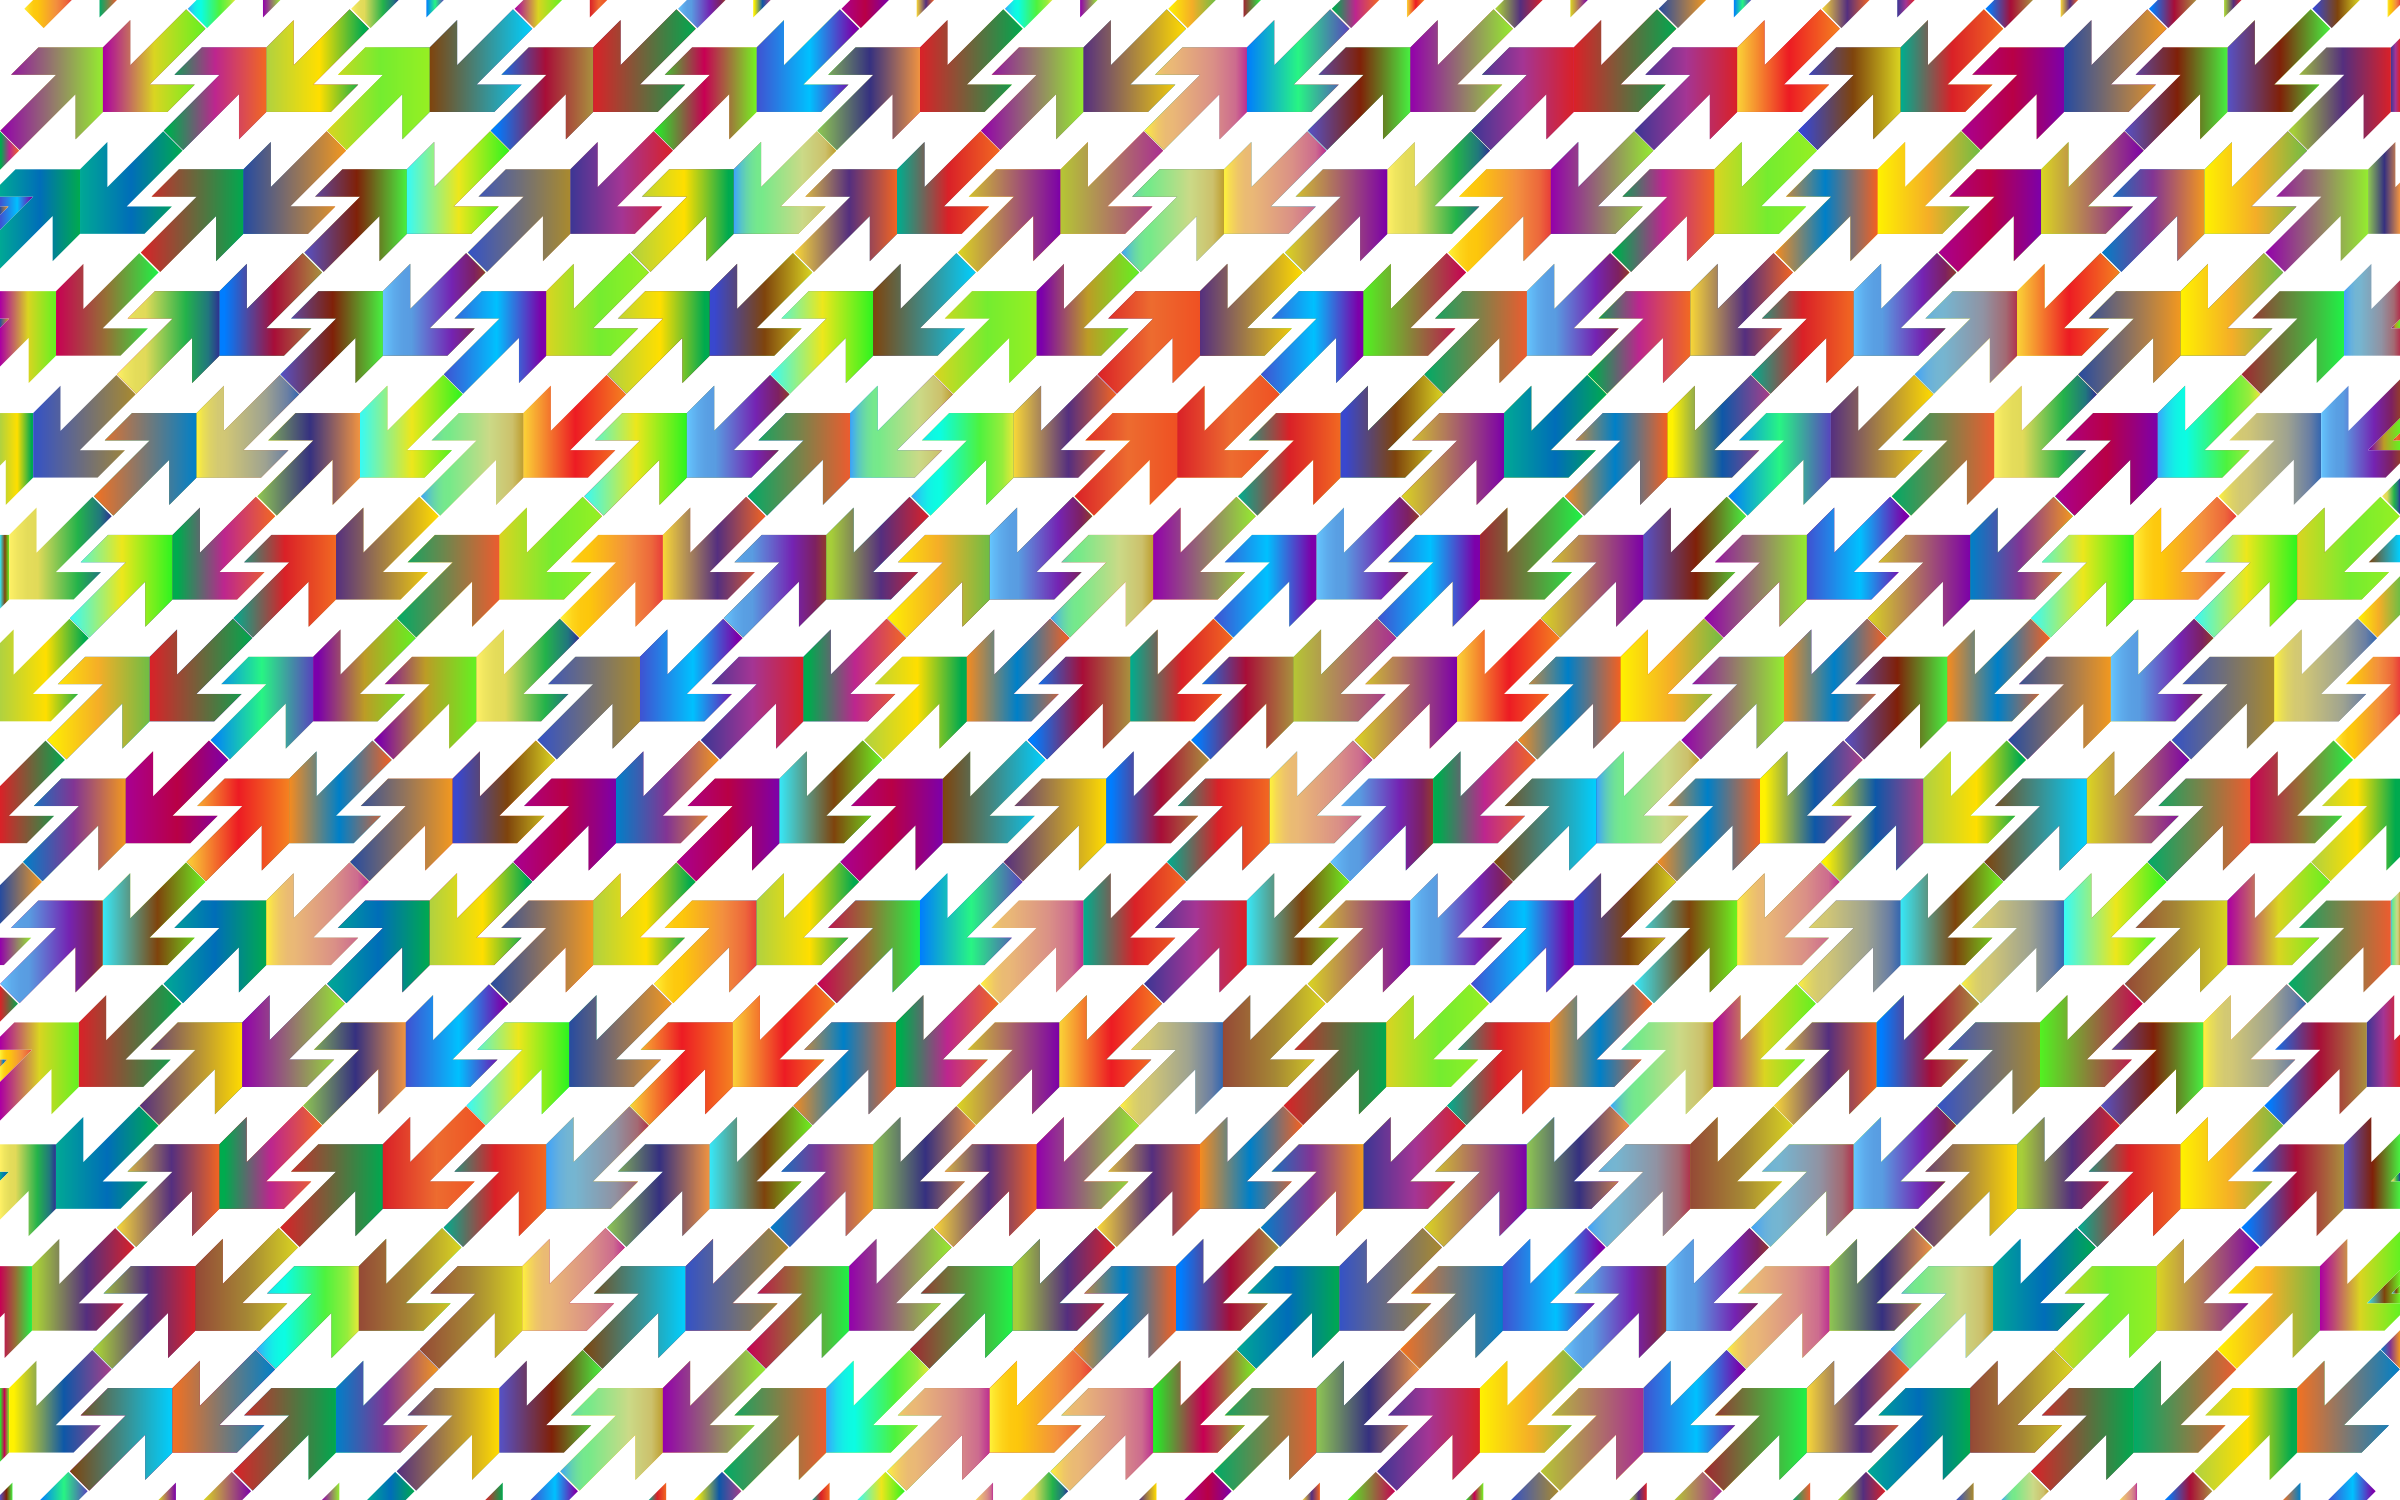 Prismatic Abstract Arrows Pattern 3 by GDJ